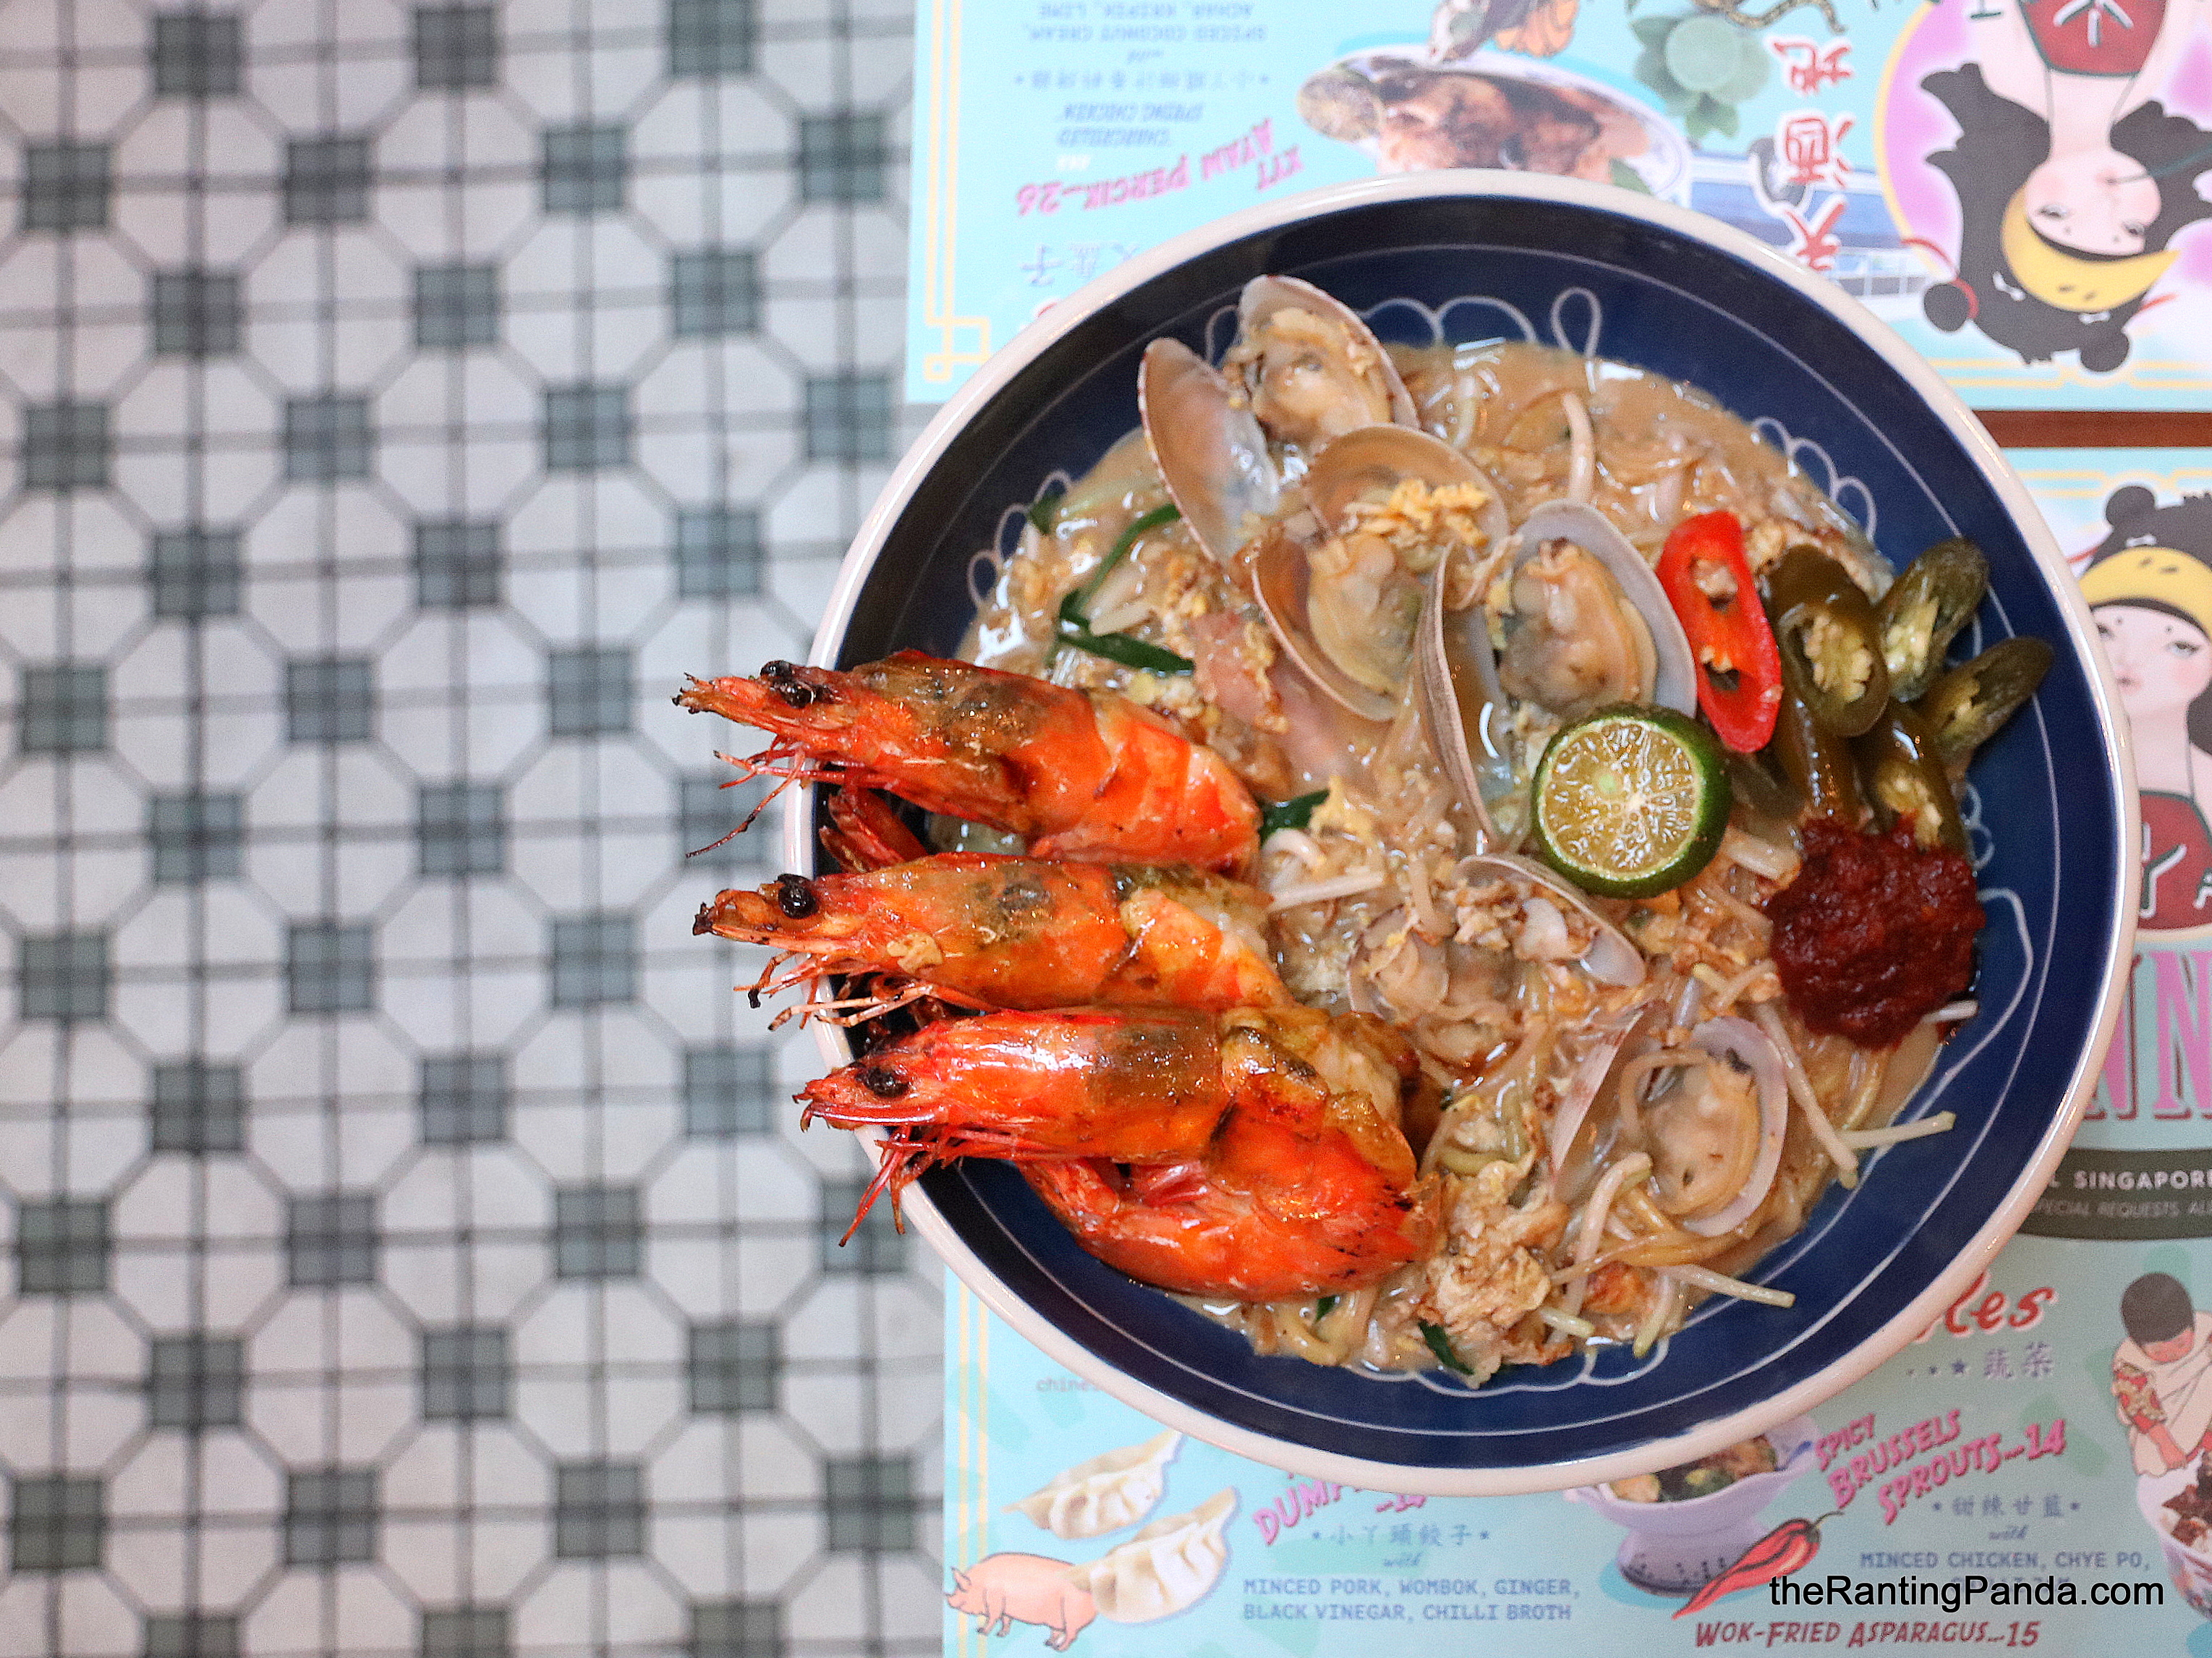 Food Review: Xiao Ya Tou at Duxton Hill | Familiar Singapore and Asian Flavours with a Twist